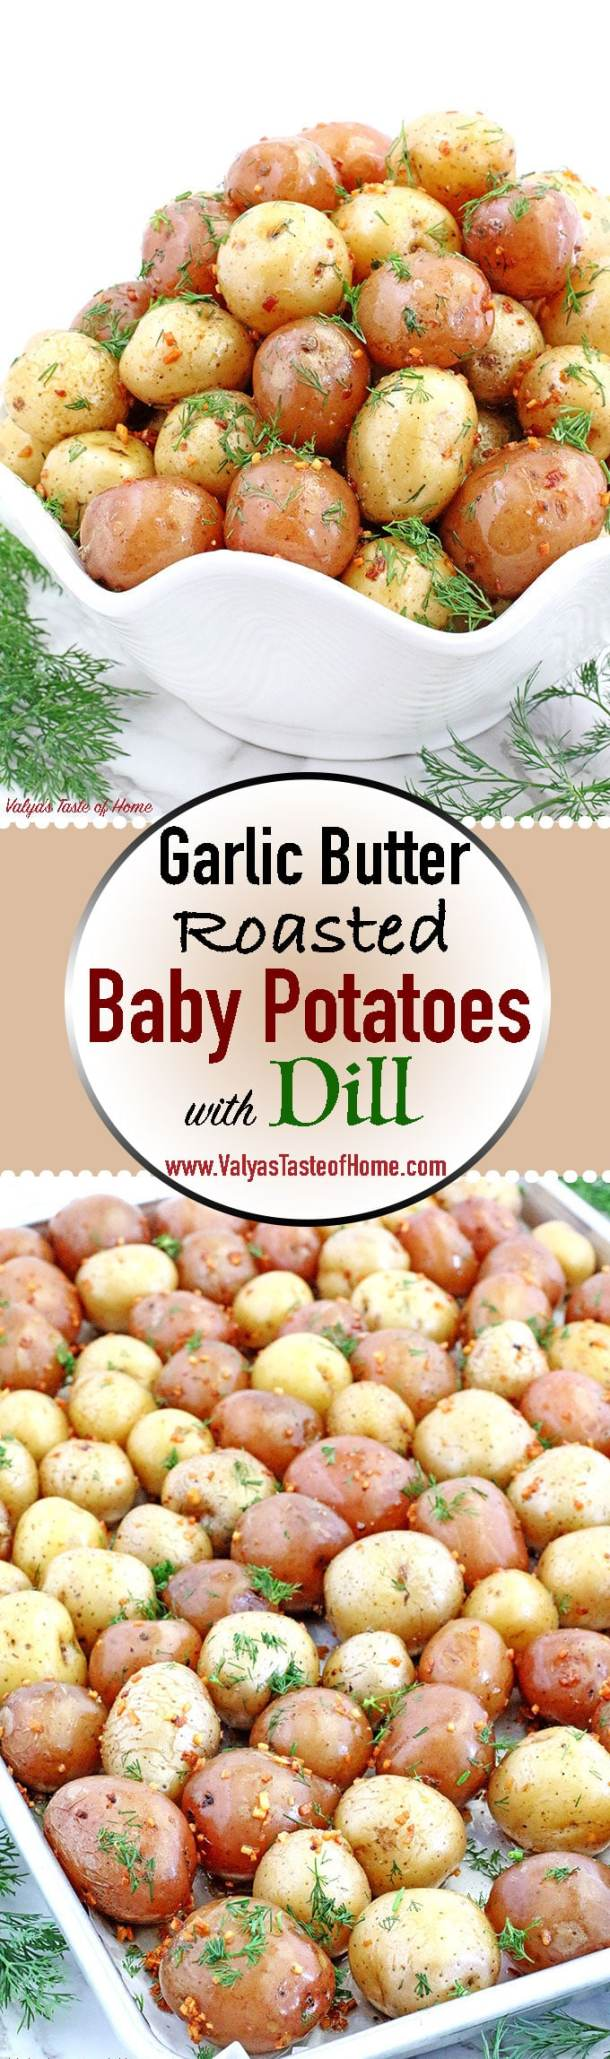 This Garlic Butter Roasted Baby Potatoes with Dill takes approximately thirty minutes to make which makes a perfect side dinner dish, especially during busy days. Kid friendly small in size potatoes coated with garlic butter and sprinkled with fresh dill is not only very attractive but super tasty as well! | www.valyastasteofhome.com